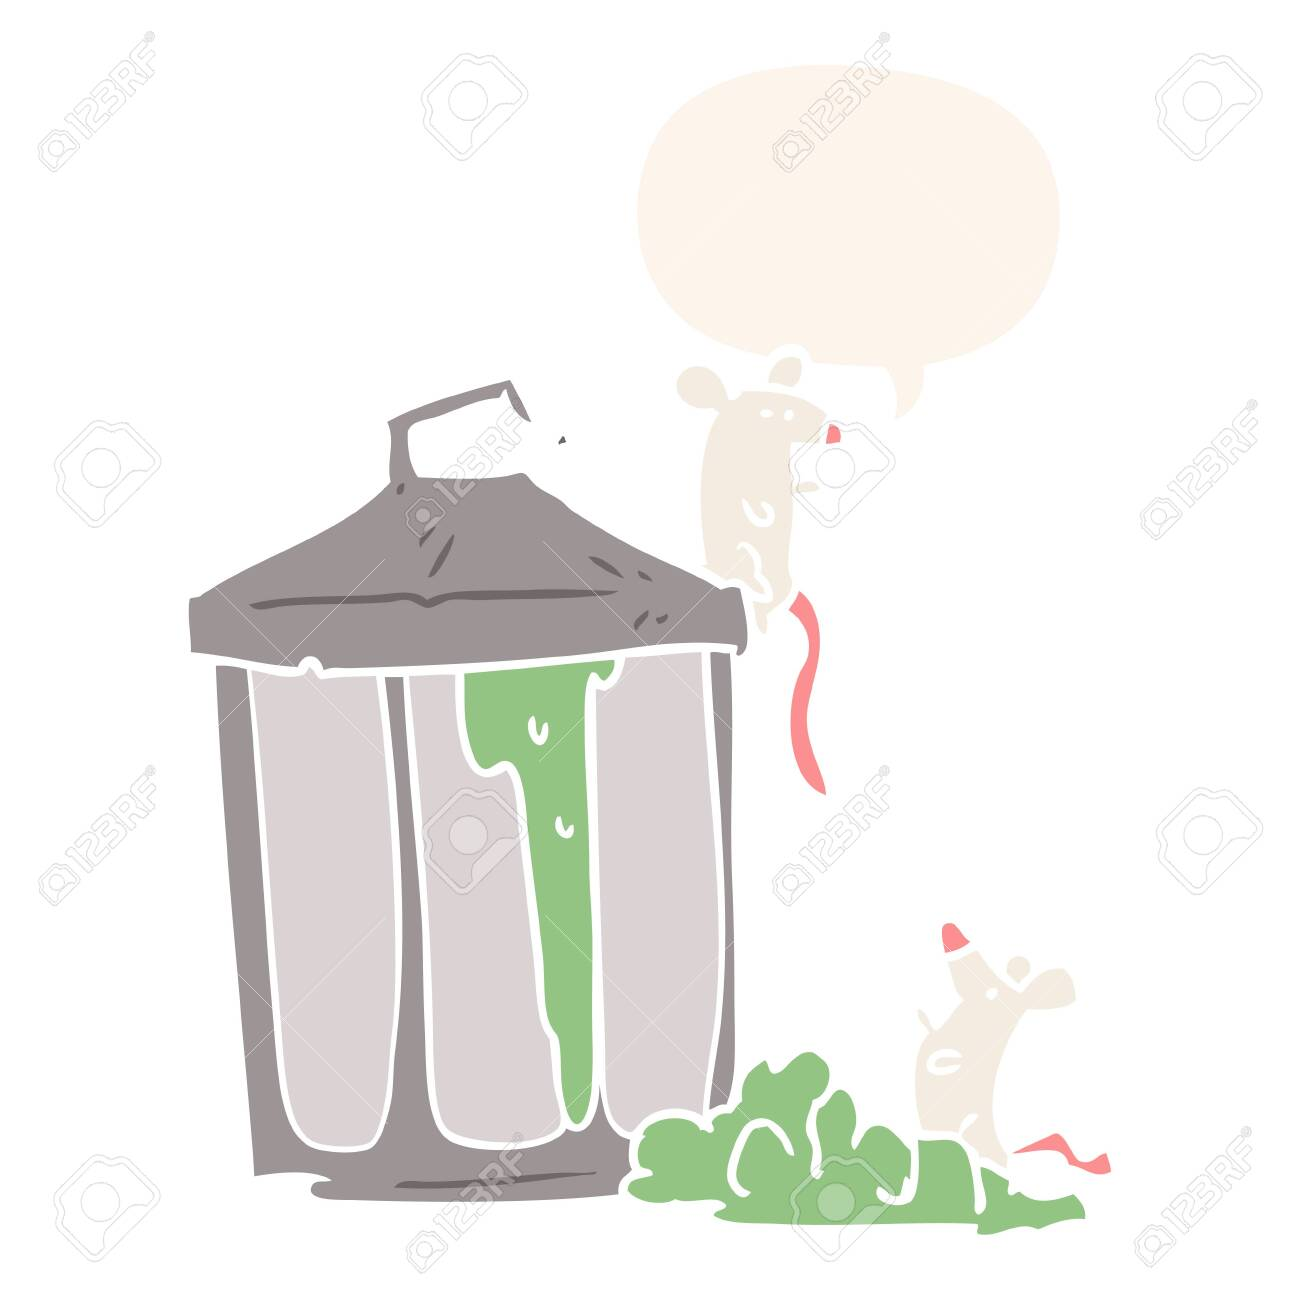 Cartoon Old Metal Garbage Can With Mice With Speech Bubble In